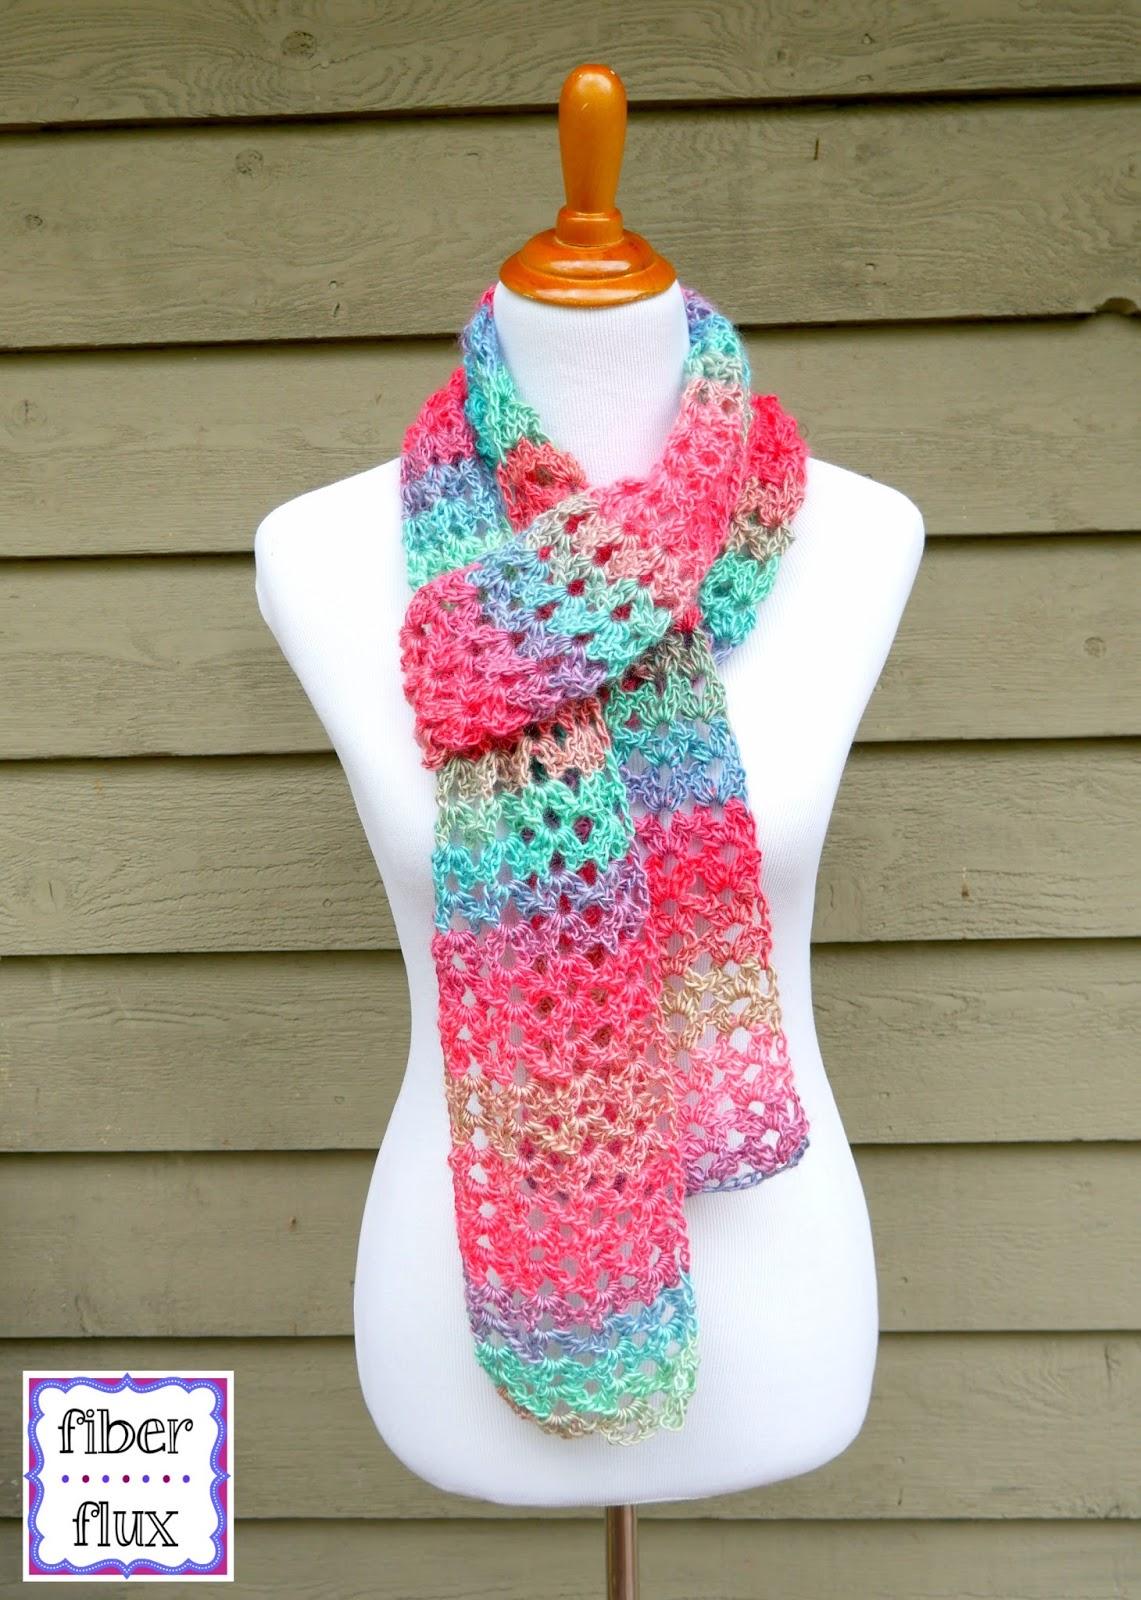 Free Crochet Patterns For Lightweight Scarves : Fiber Flux: Free Crochet Pattern...Island Lace Scarf!